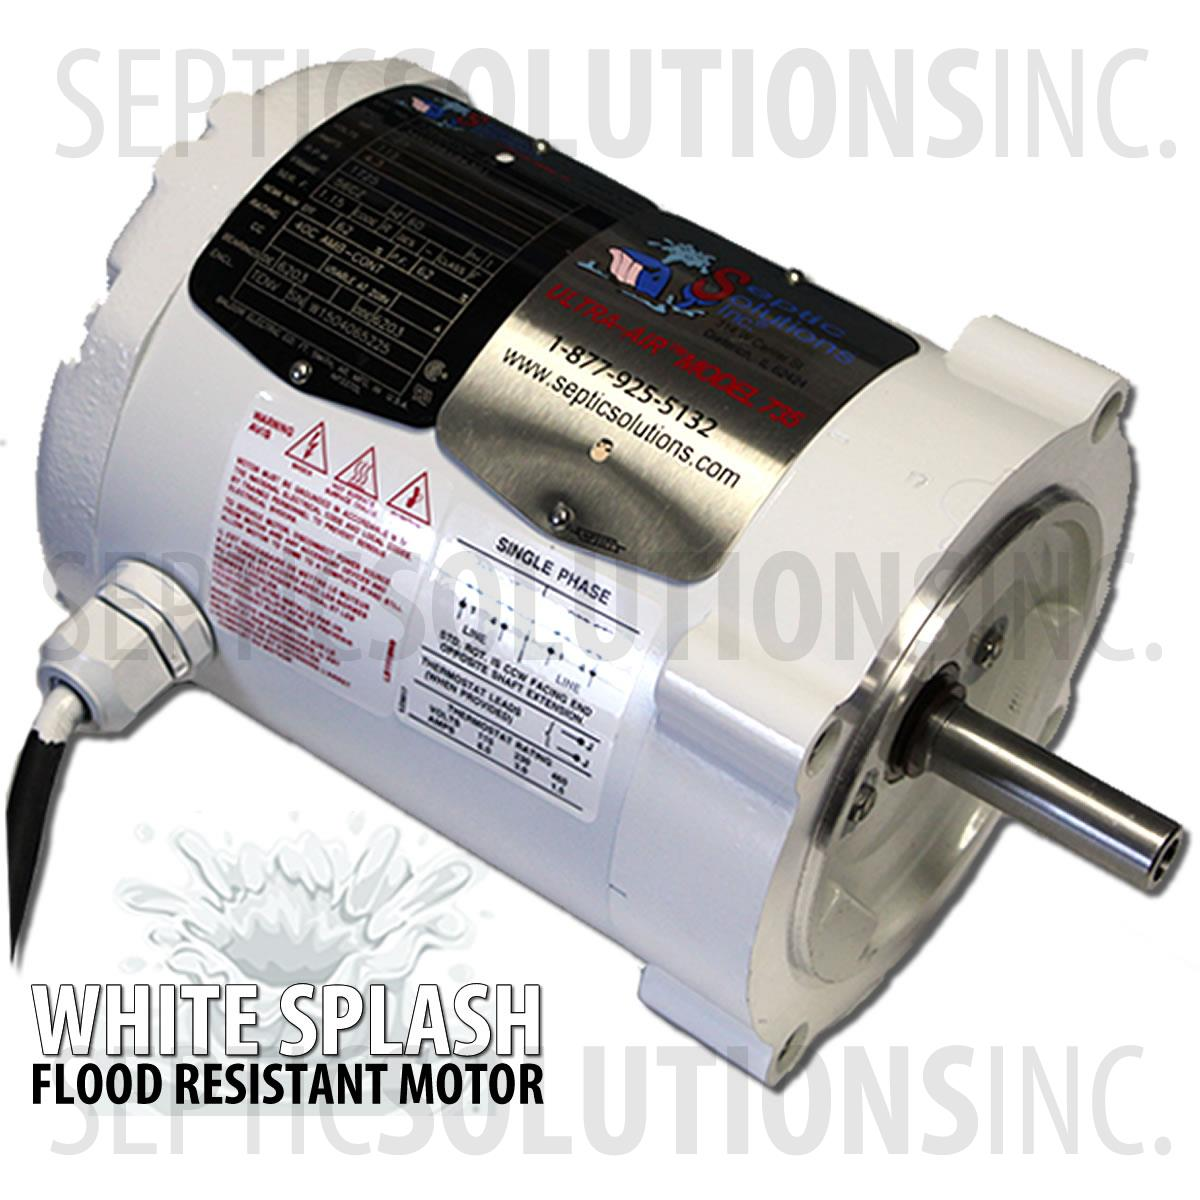 Ultra air model 735 white splash flood resistant Septic motor